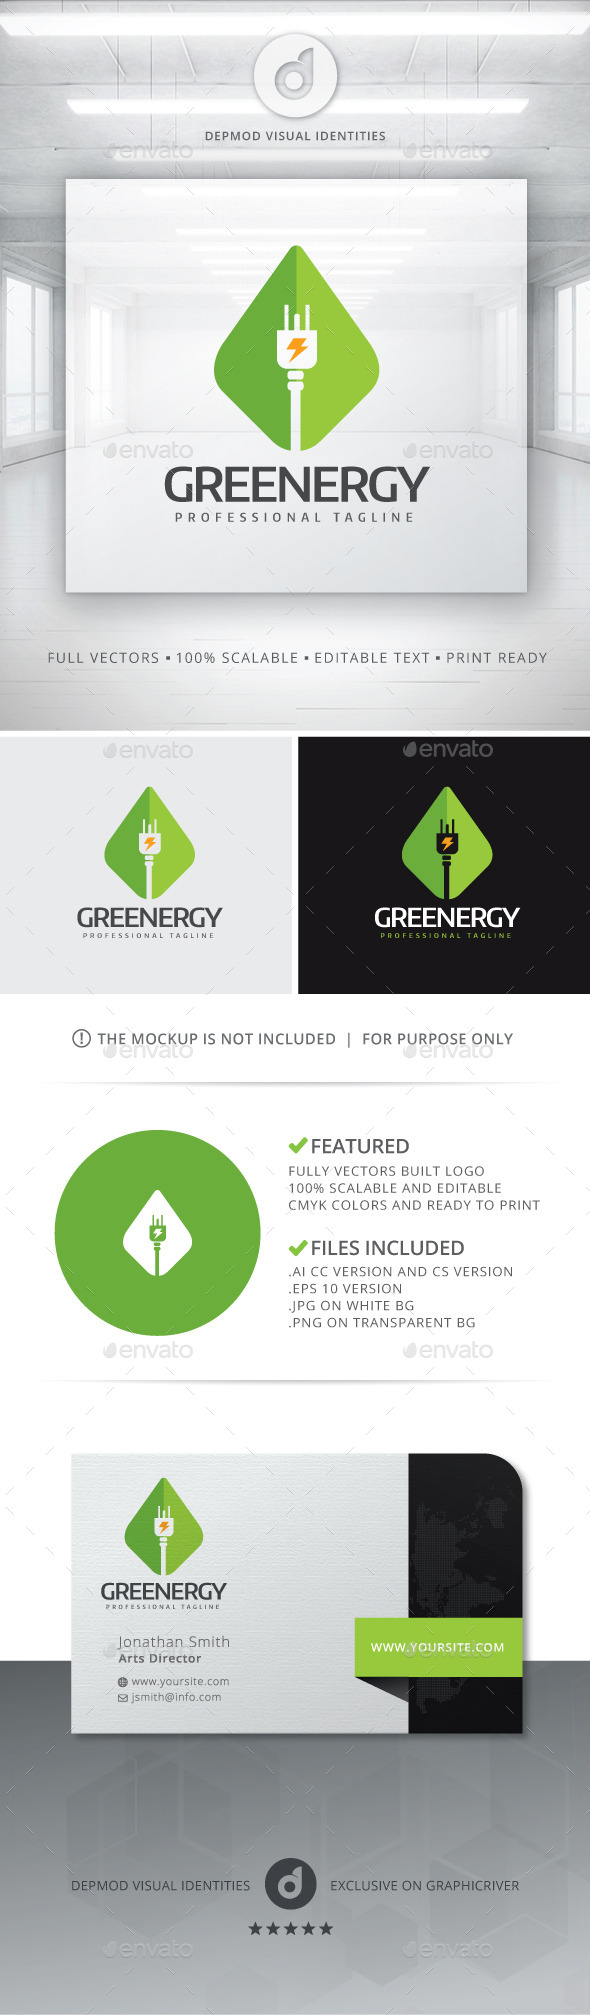 GraphicRiver Greenergy Logo 11239465